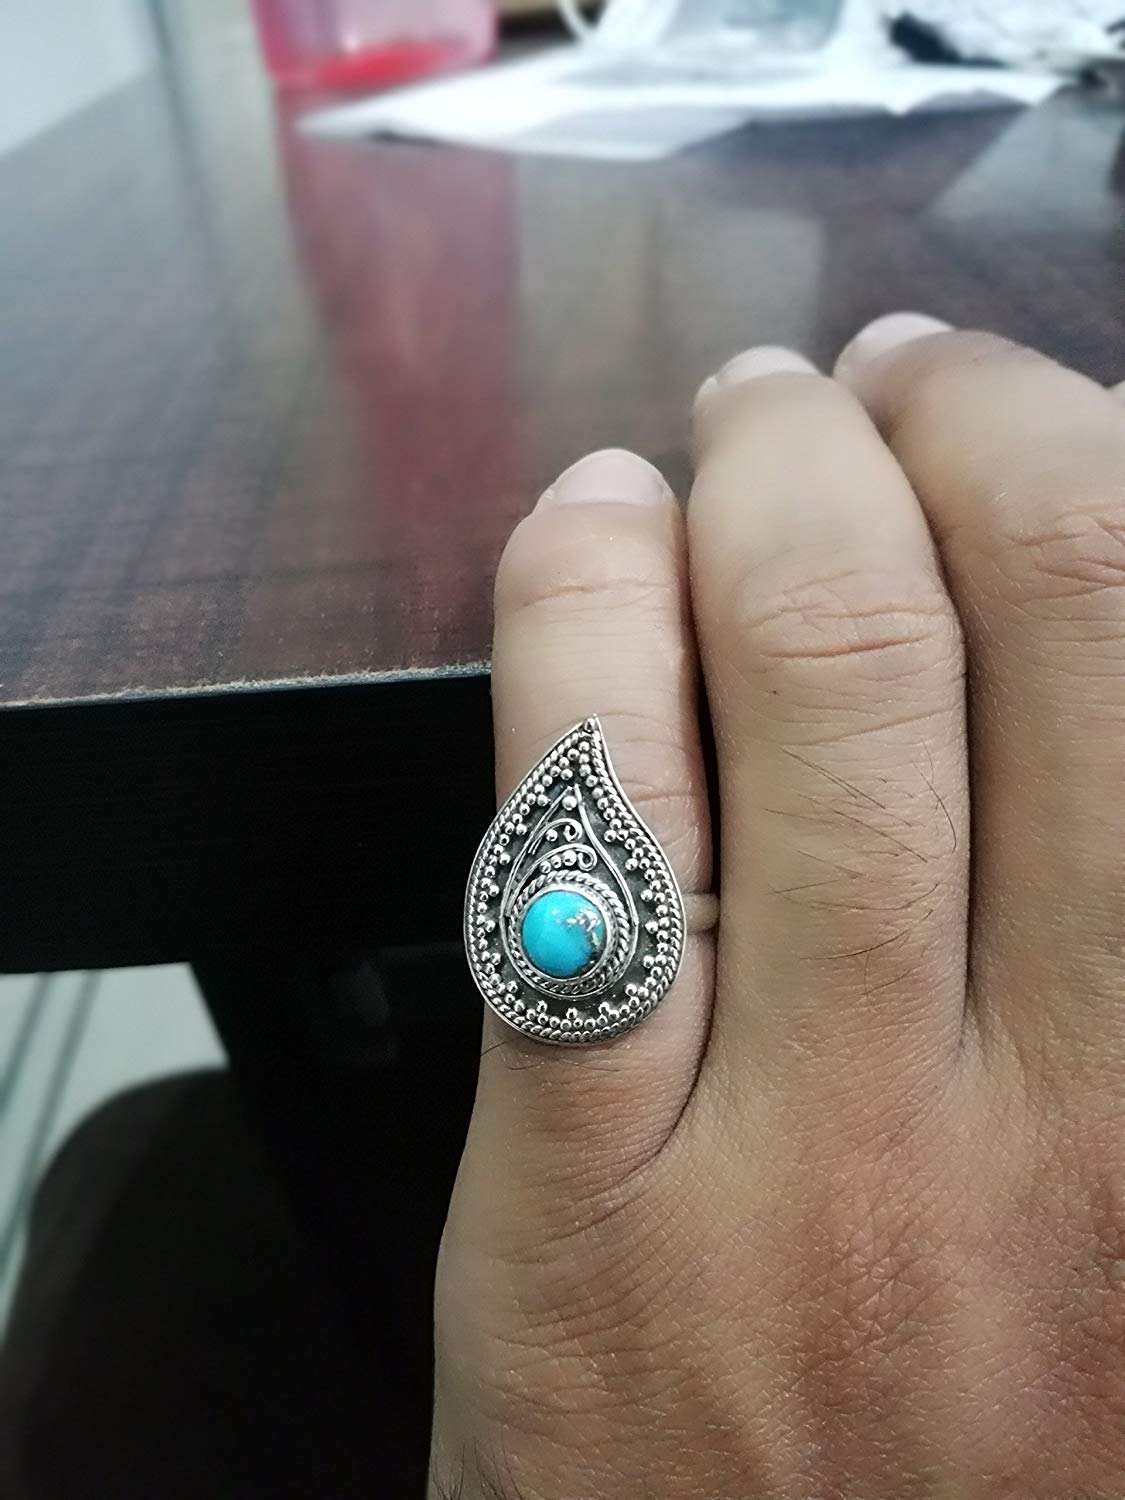 Turquoise Ring, 925 Sterling Silver Ring, December Birthstone, Vintage Ring, Leaf Shape Ring, Minimalist Stone Ring, Boho Ring, Antique Ring, Designer Ring, Good Looking Ring, Gift, US All Size Ring